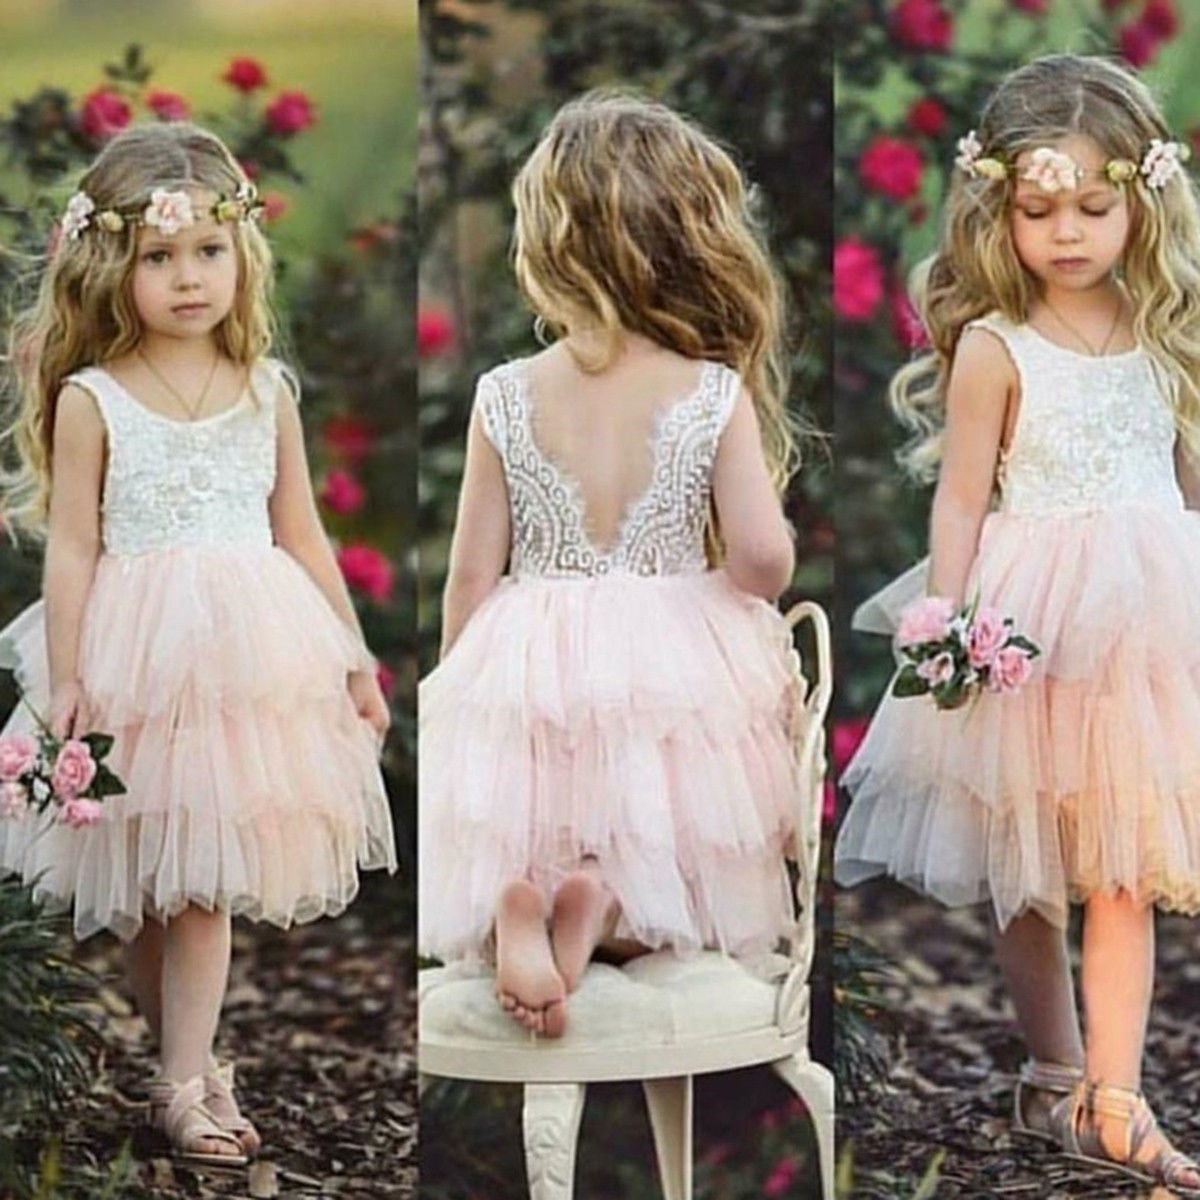 New Flower Girl Princess Dress Kid Party Wedding Pageant Lace Tulle Tutu Dresses